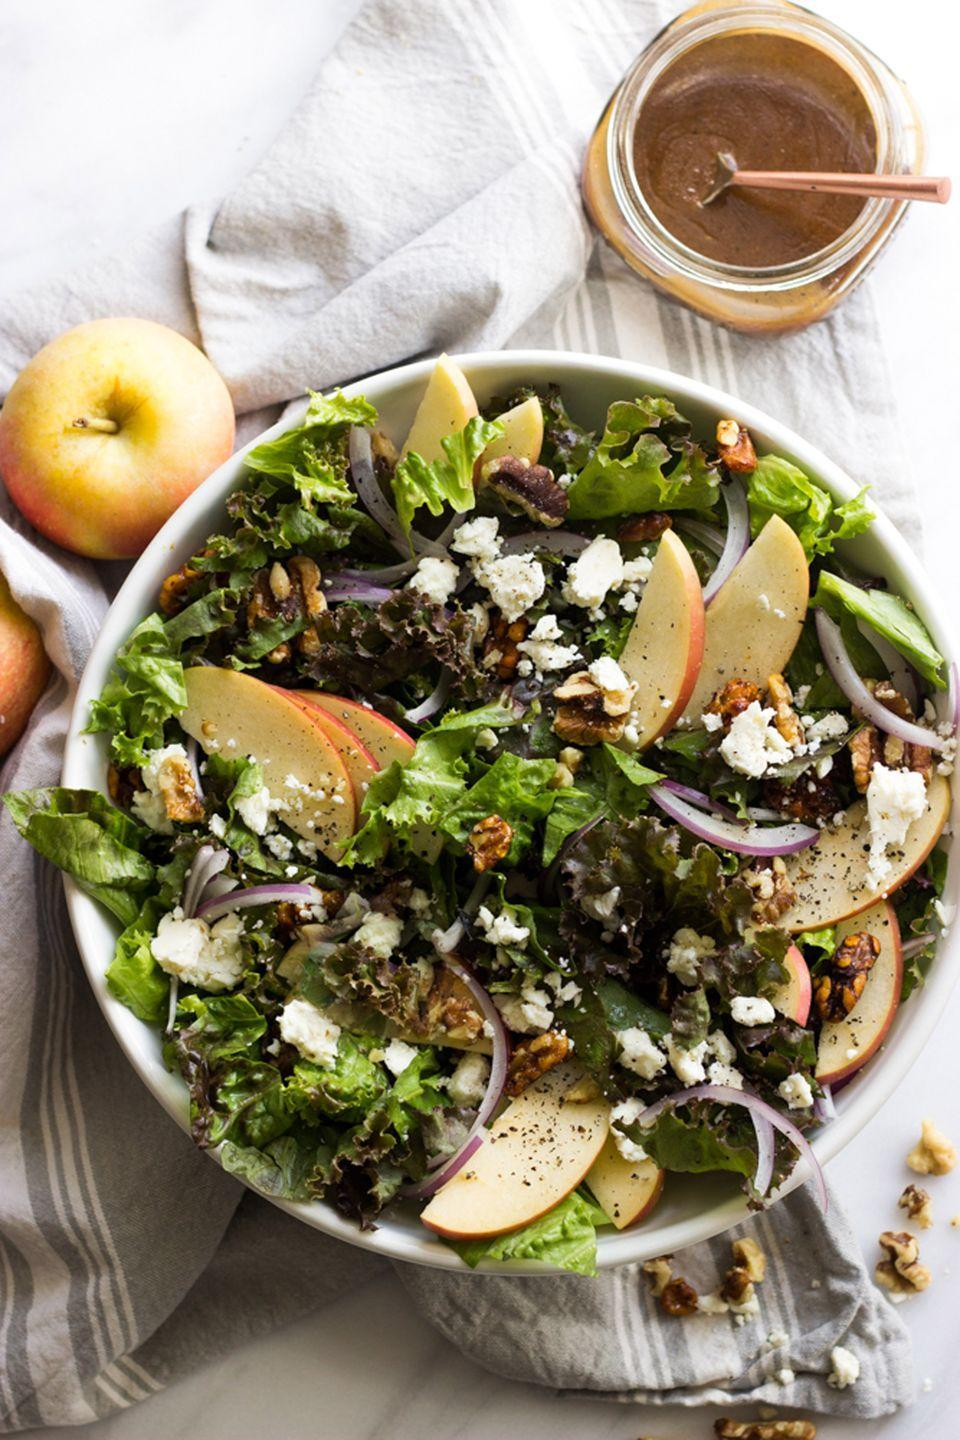 "<p>This light salad—drizzled with a homemade dressing—is versatile enough to be served aside any fall dinner dish.</p><p><strong>Get the tutorial at <a href=""http://www.littlebroken.com/2016/10/04/apple-walnut-salad-with-balsamic-vinaigrette/"" rel=""nofollow noopener"" target=""_blank"" data-ylk=""slk:Little Broken"" class=""link rapid-noclick-resp"">Little Broken</a>.</strong></p>"